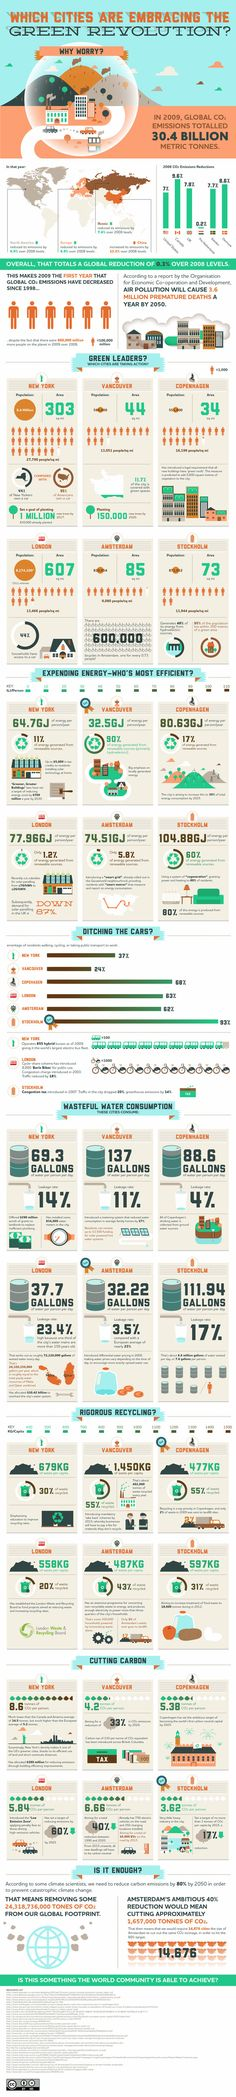 Green Cities #infographic